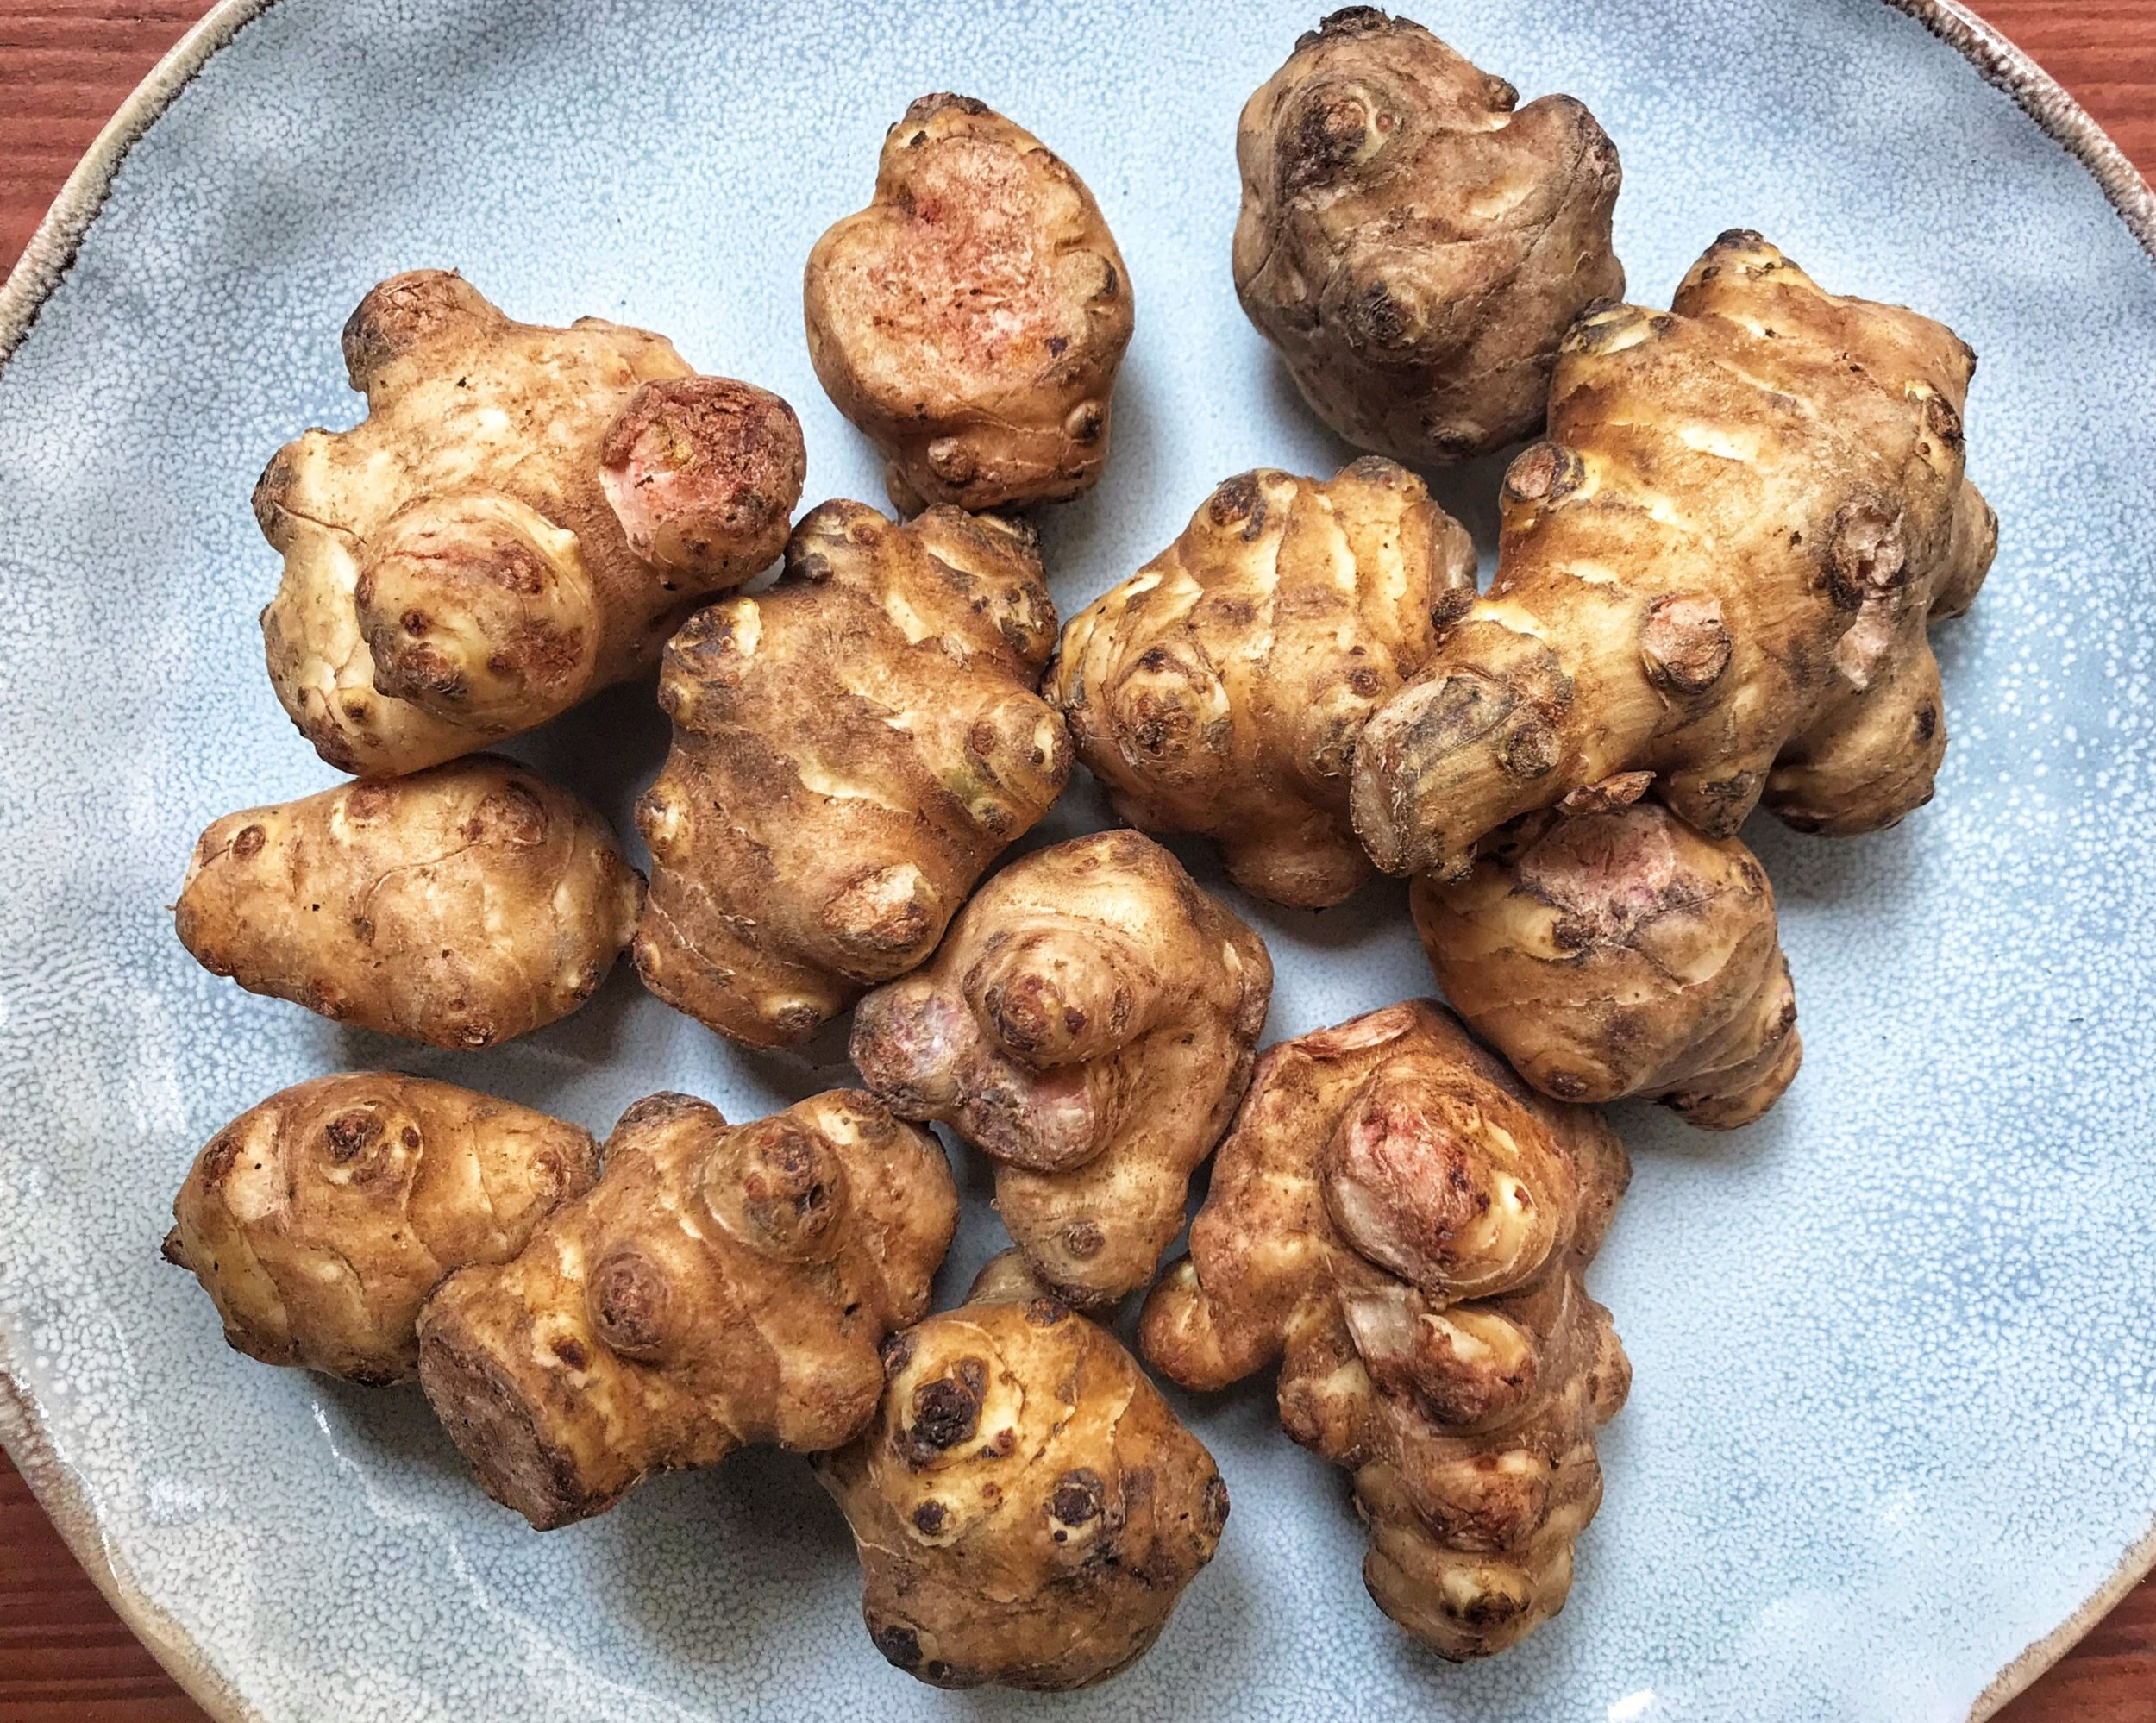 Jerusalem artichoke - also called sunroot, sunchoke, or earth apple, is a species of sunflower native to eastern North America, and found from eastern Canada and Maine west to North Dakota, and south to northern Florida and Texas.Source: Wikipedia.